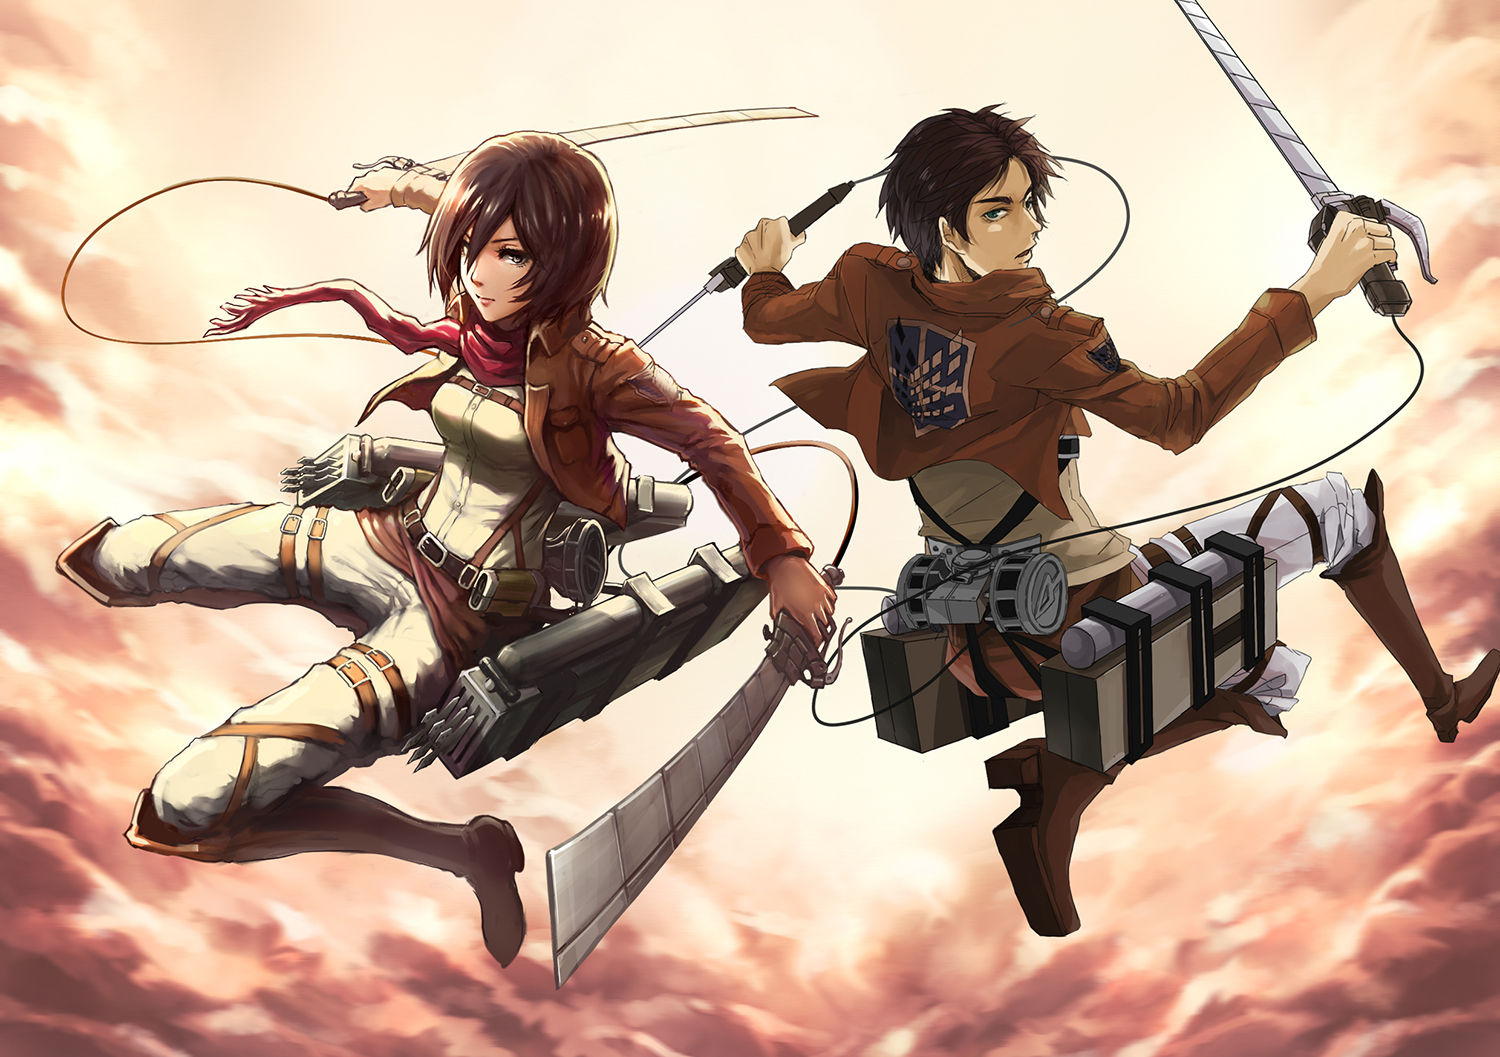 Music Song Shingeki no Kyojin